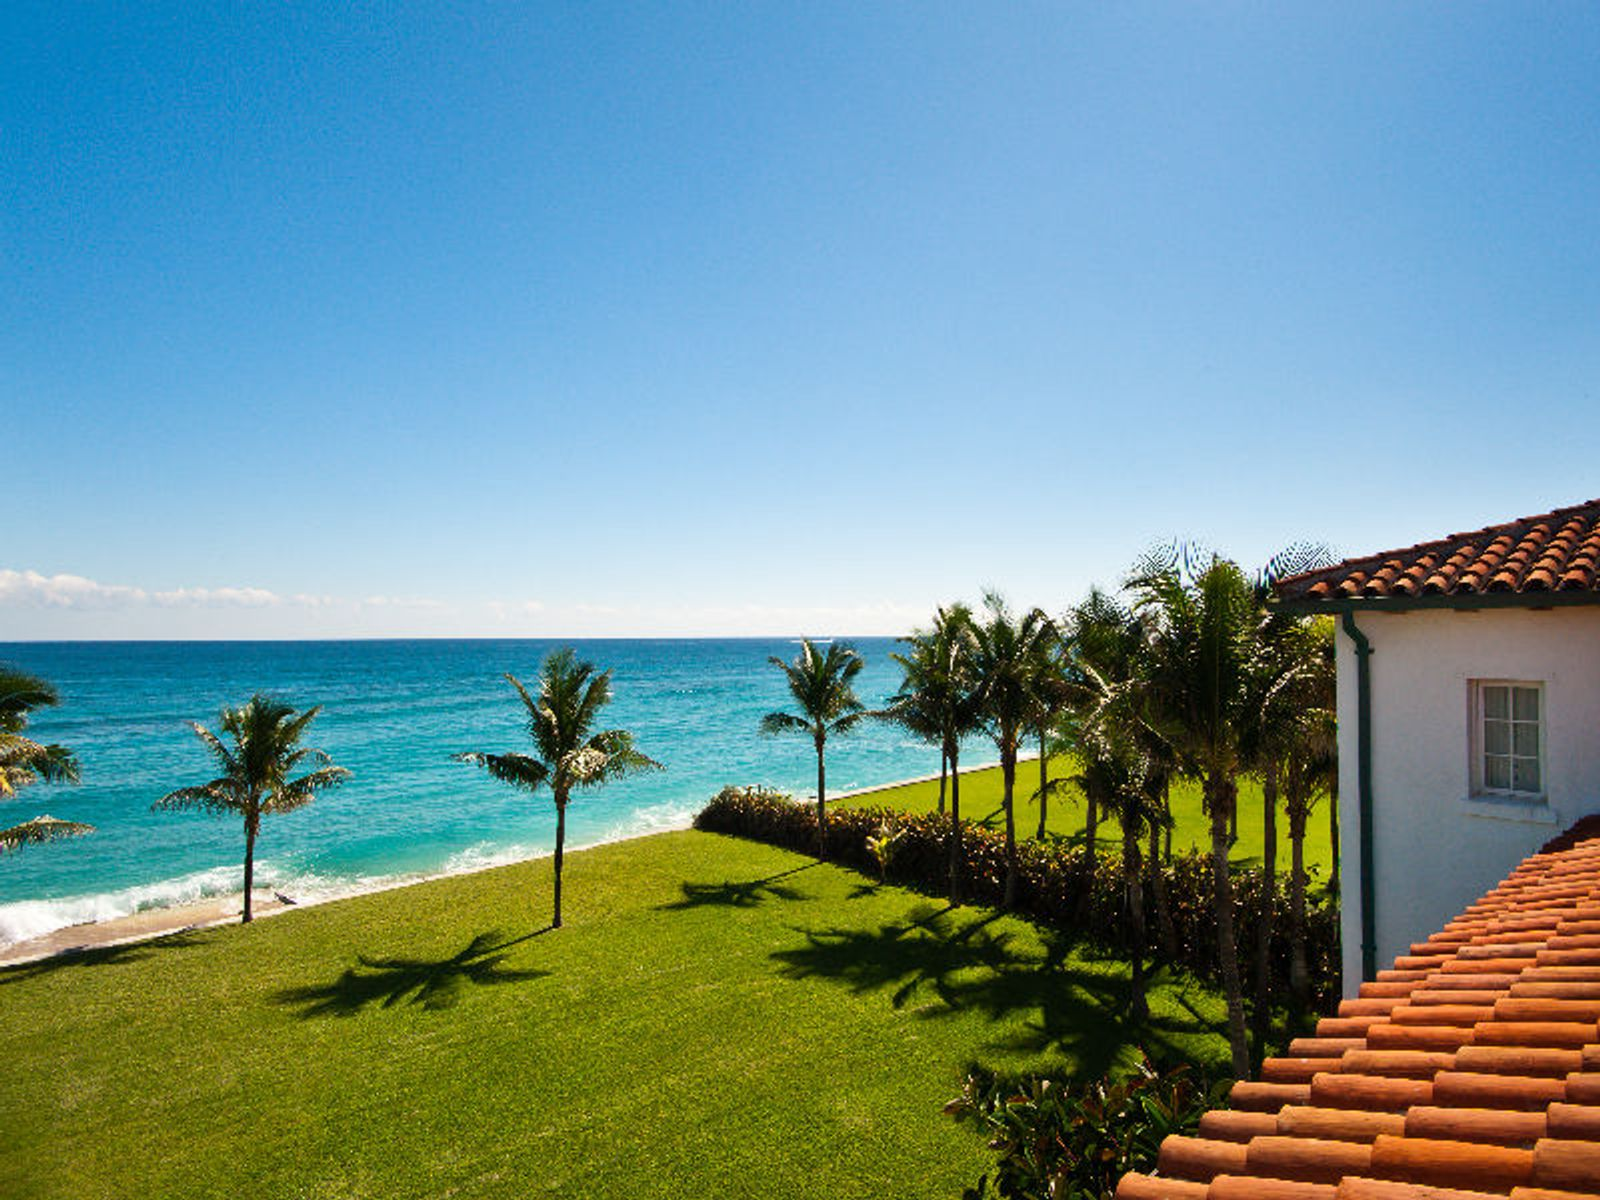 Mizner's Louwana Oceanfront Masterpiece, Palm Beach FL Single Family Home - Palm Beach Real Estate